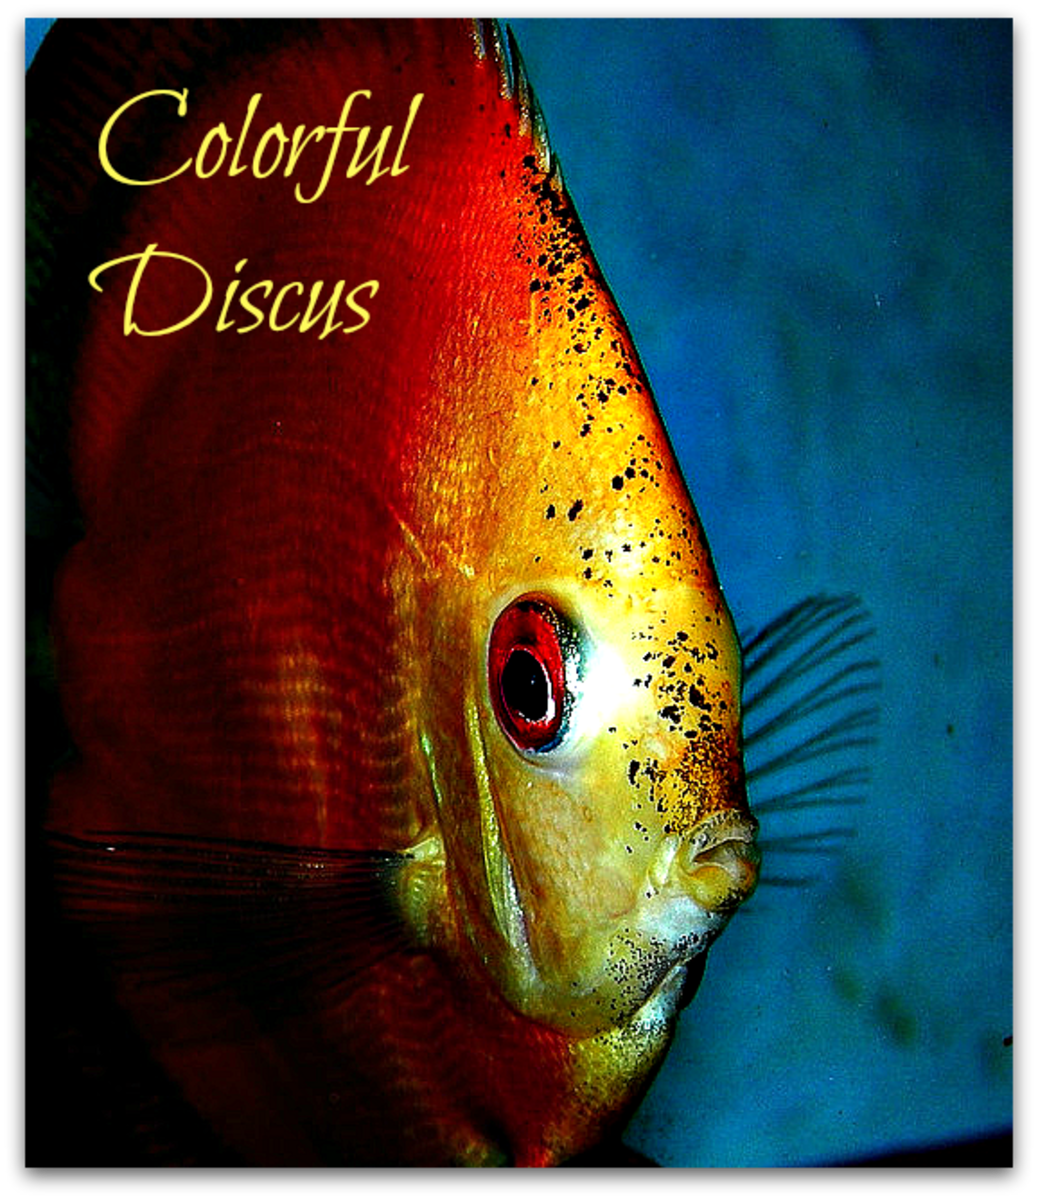 Colorful Discus Fishes